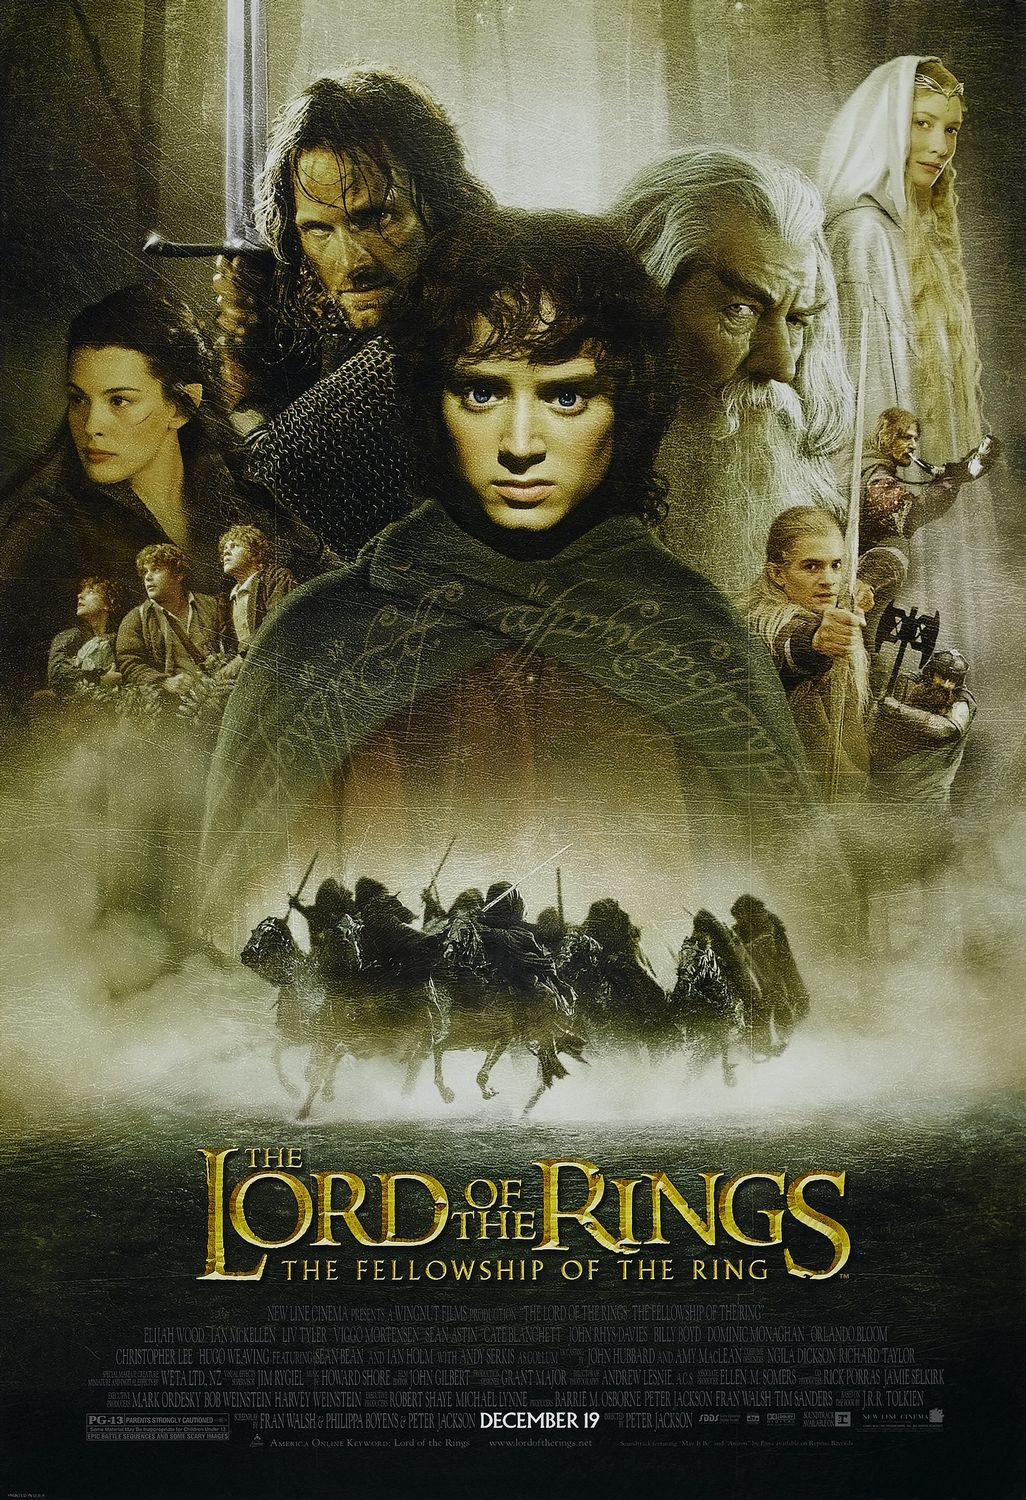 http://1.bp.blogspot.com/-wN09UGY7-E8/TcfoJiHRGHI/AAAAAAAAAWc/7EevYYj2ap4/s1600/2001-poster-lord_of_the_rings_the_fellowship_of_the_ring-3.jpg